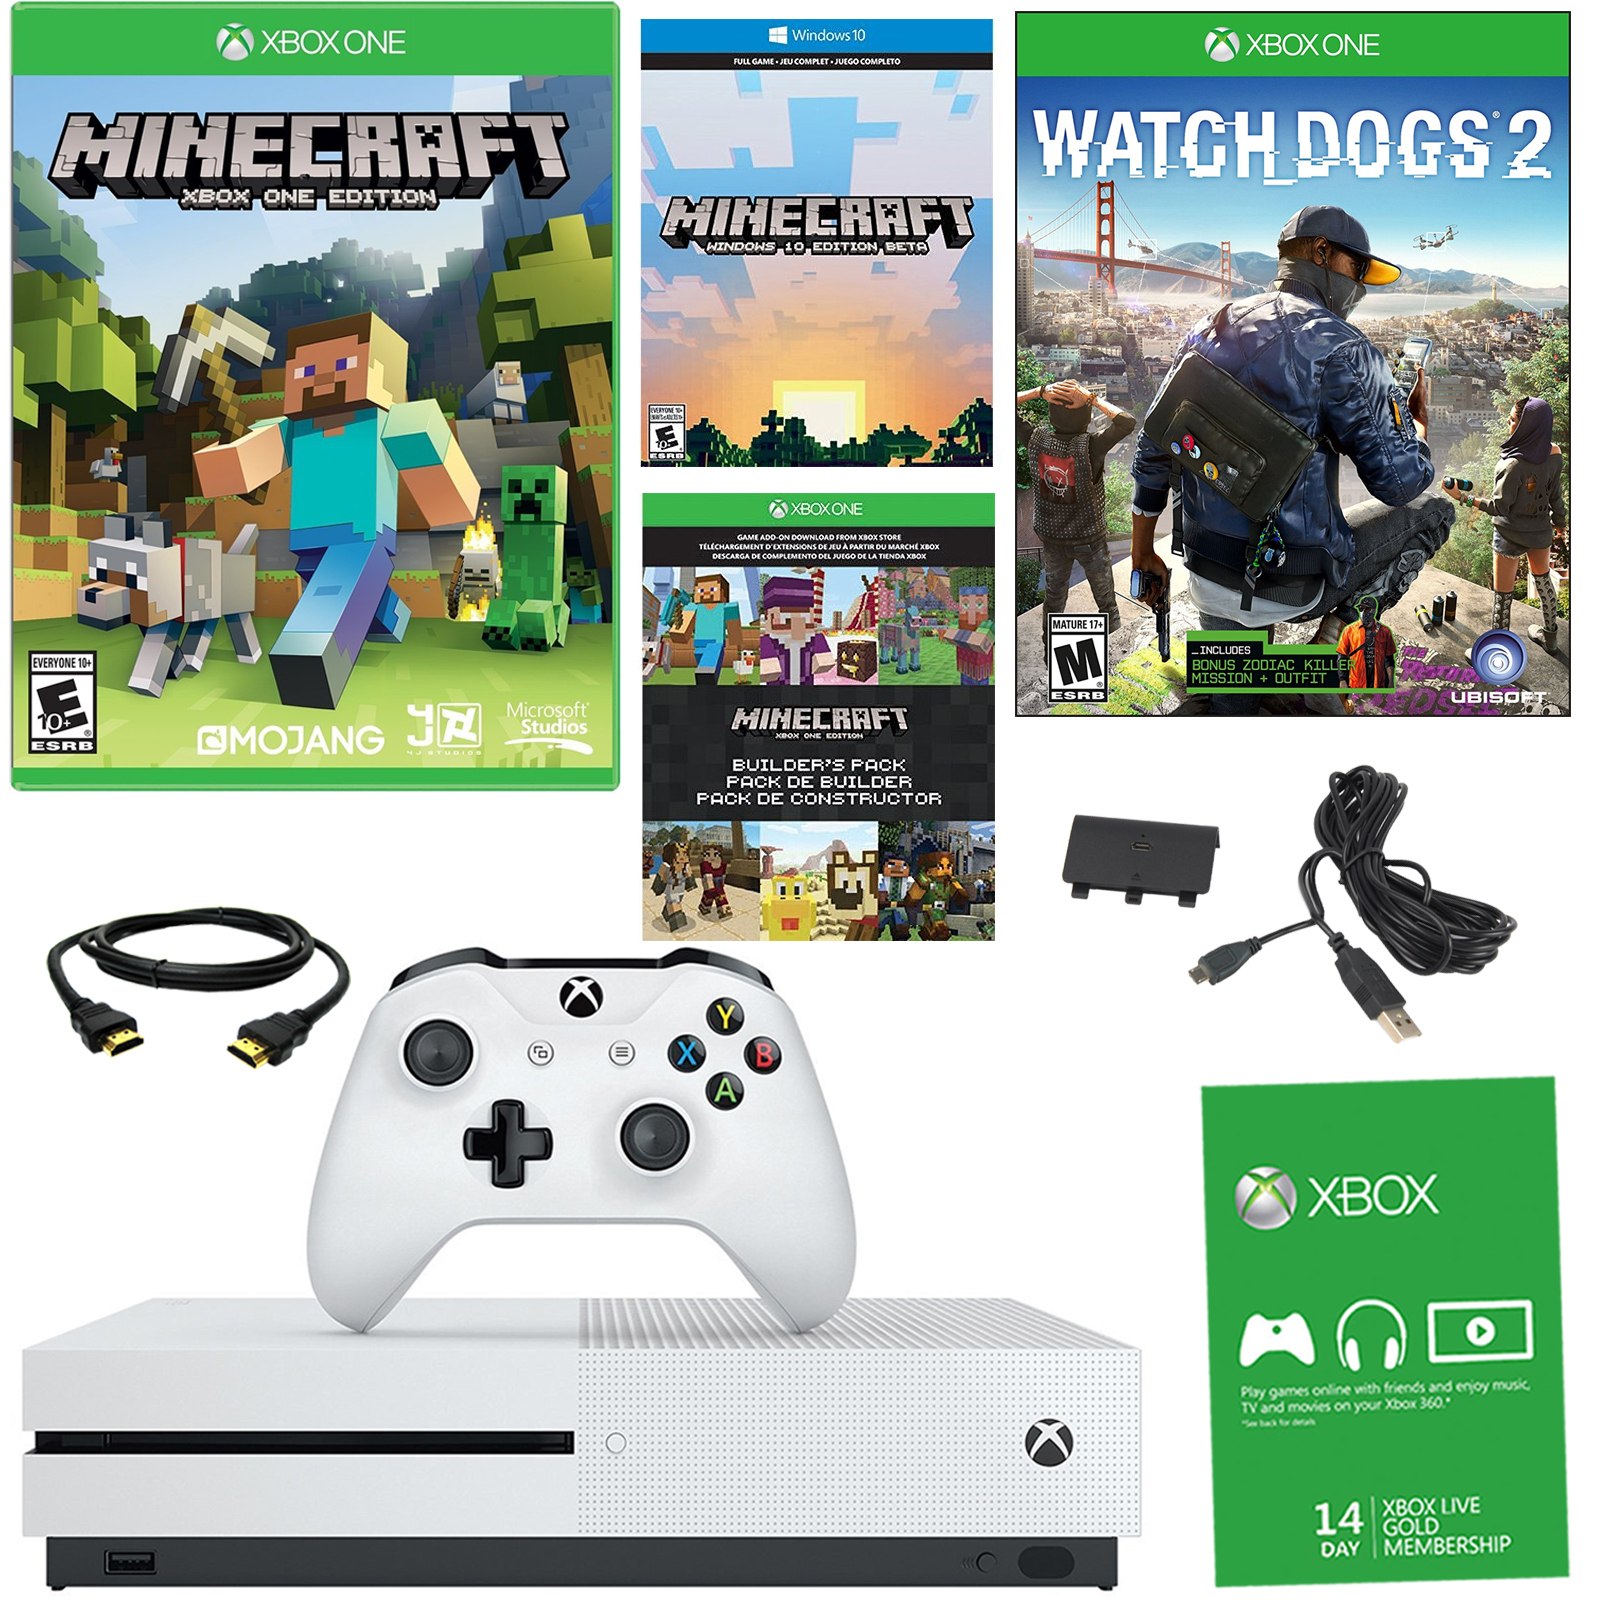 Xbox One S 500GB Minecraft Bundle With Watch Dogs 2  Battery Pack En Veo y Compro